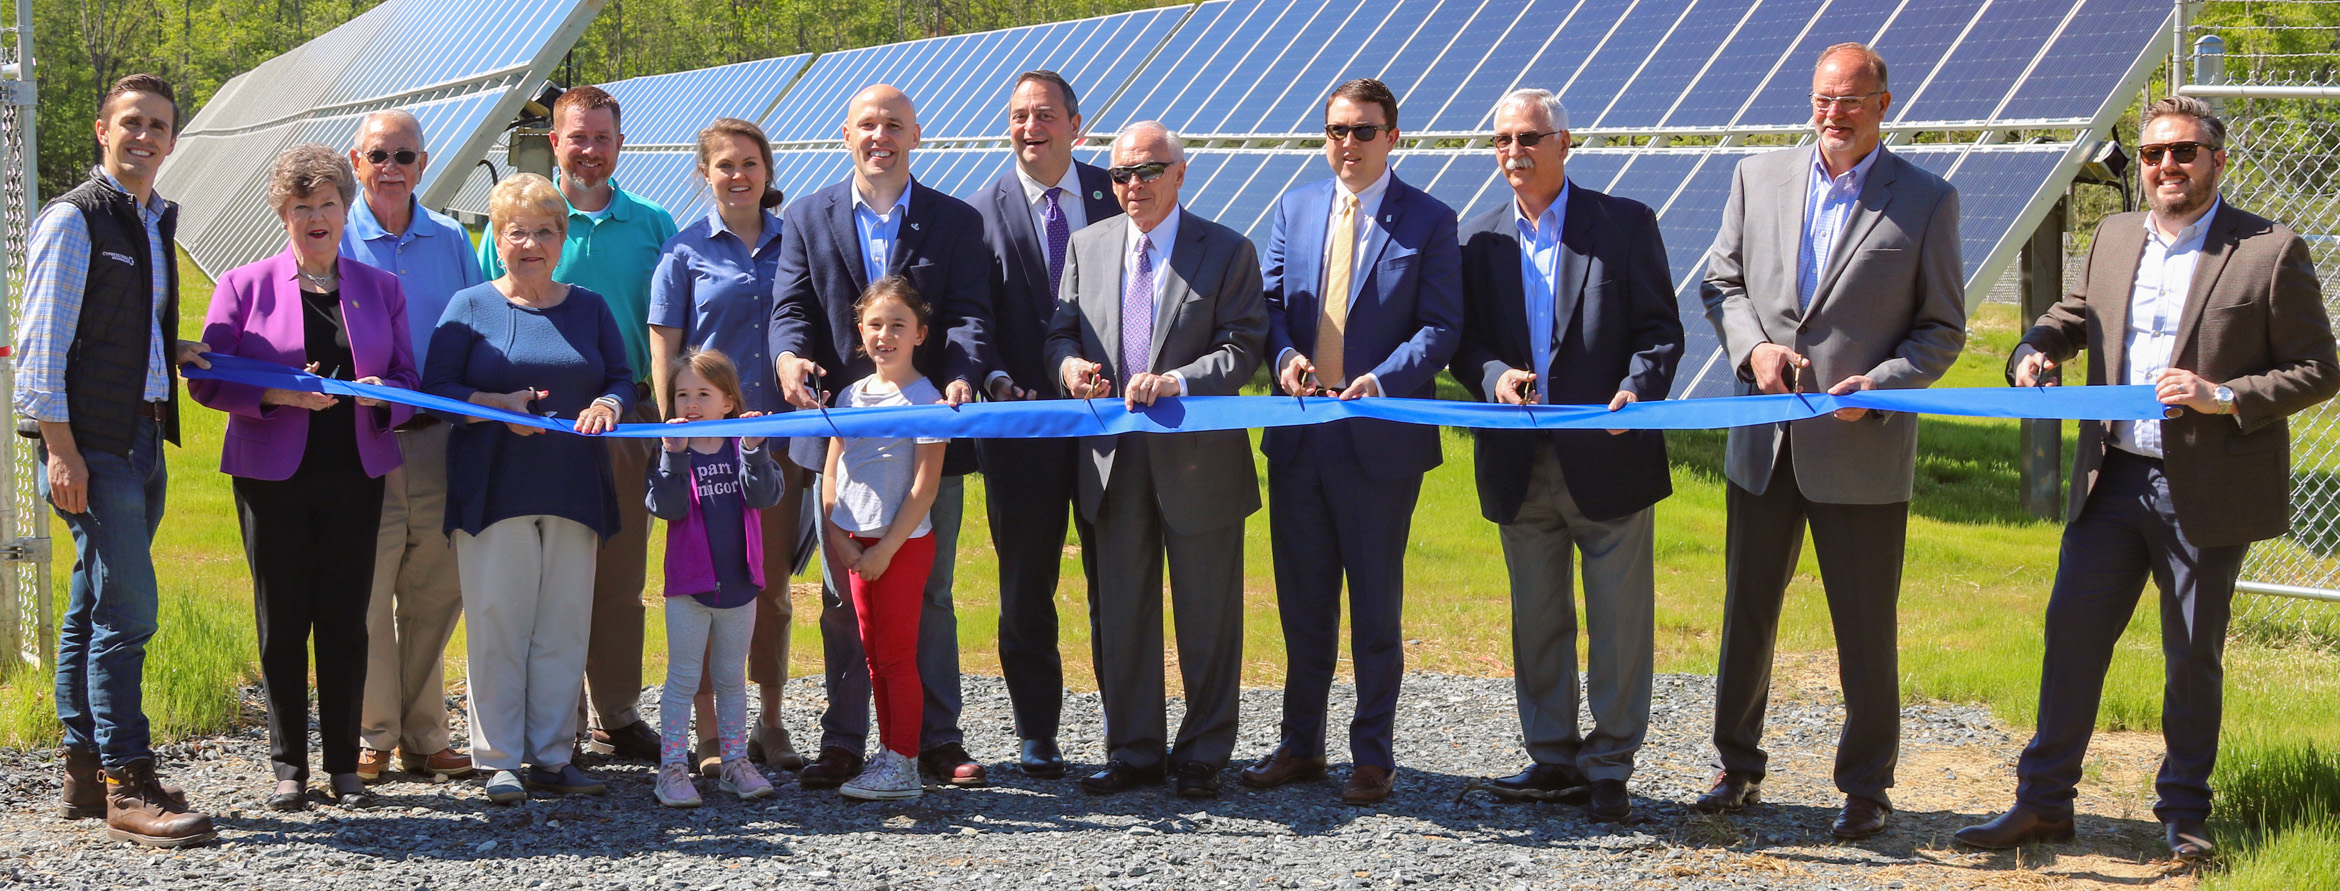 Group cuts ribbon in front of solar panels